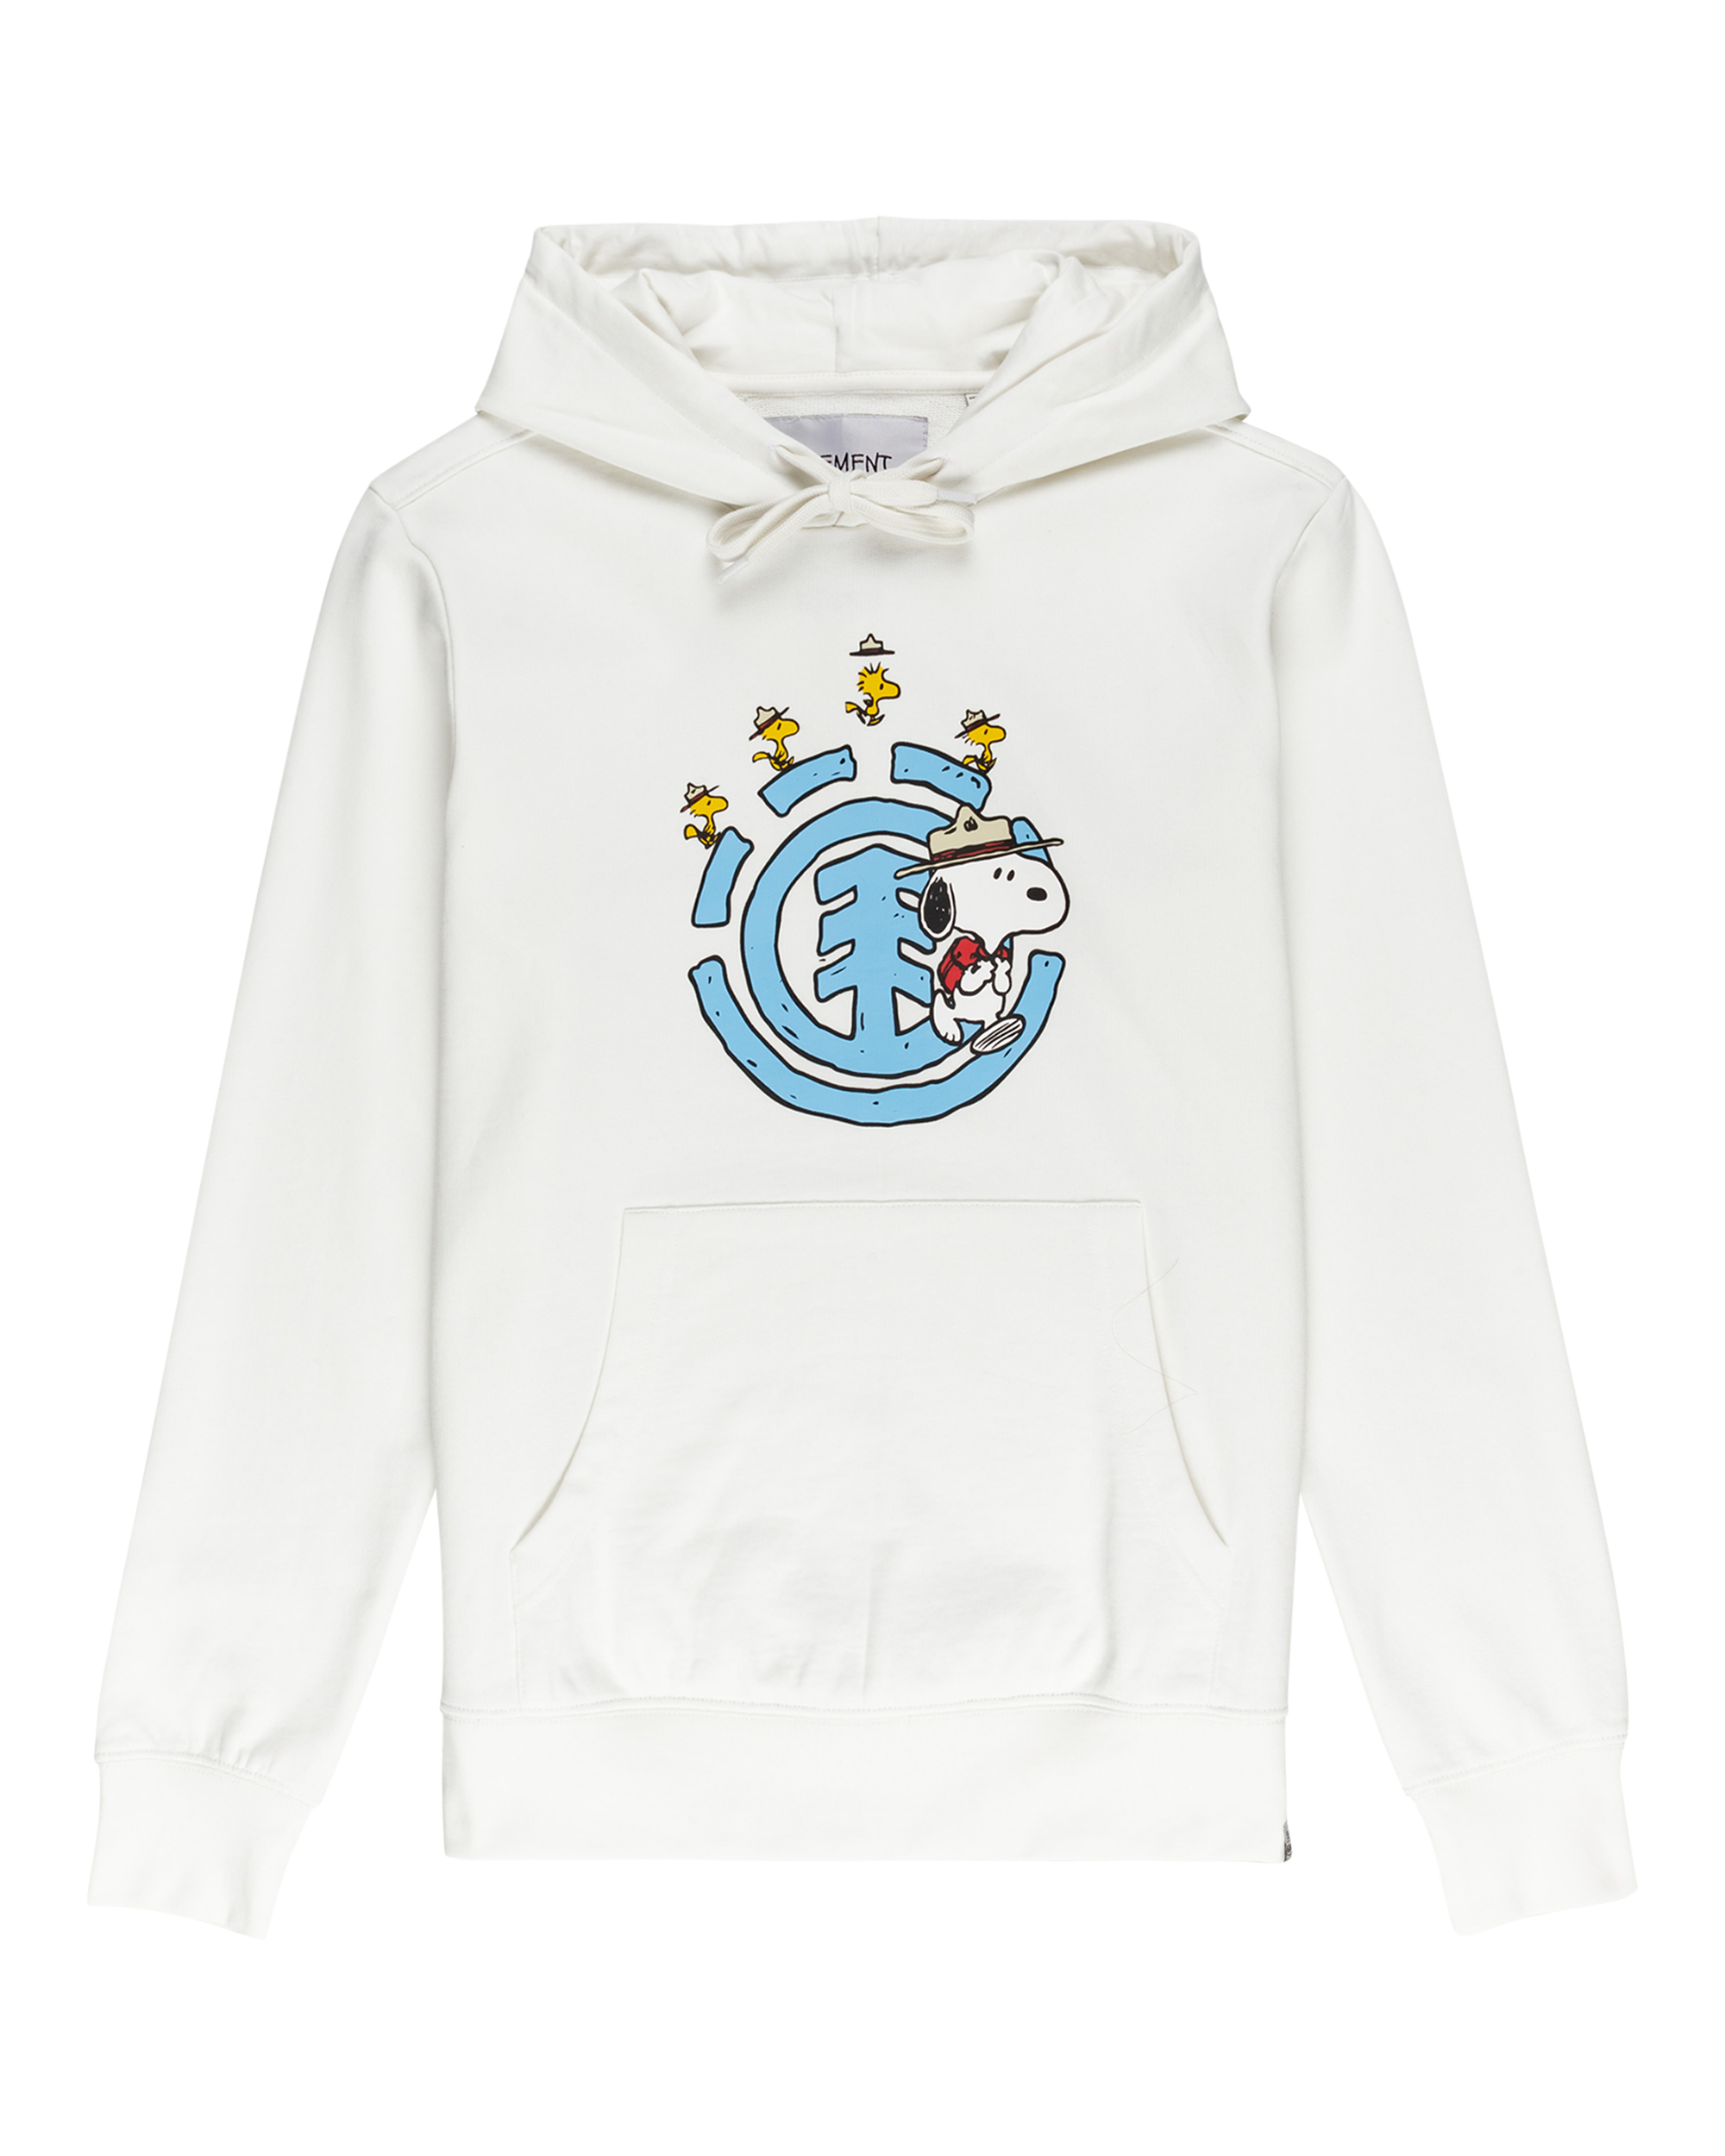 Element Peanuts hoodie, off white, x-large